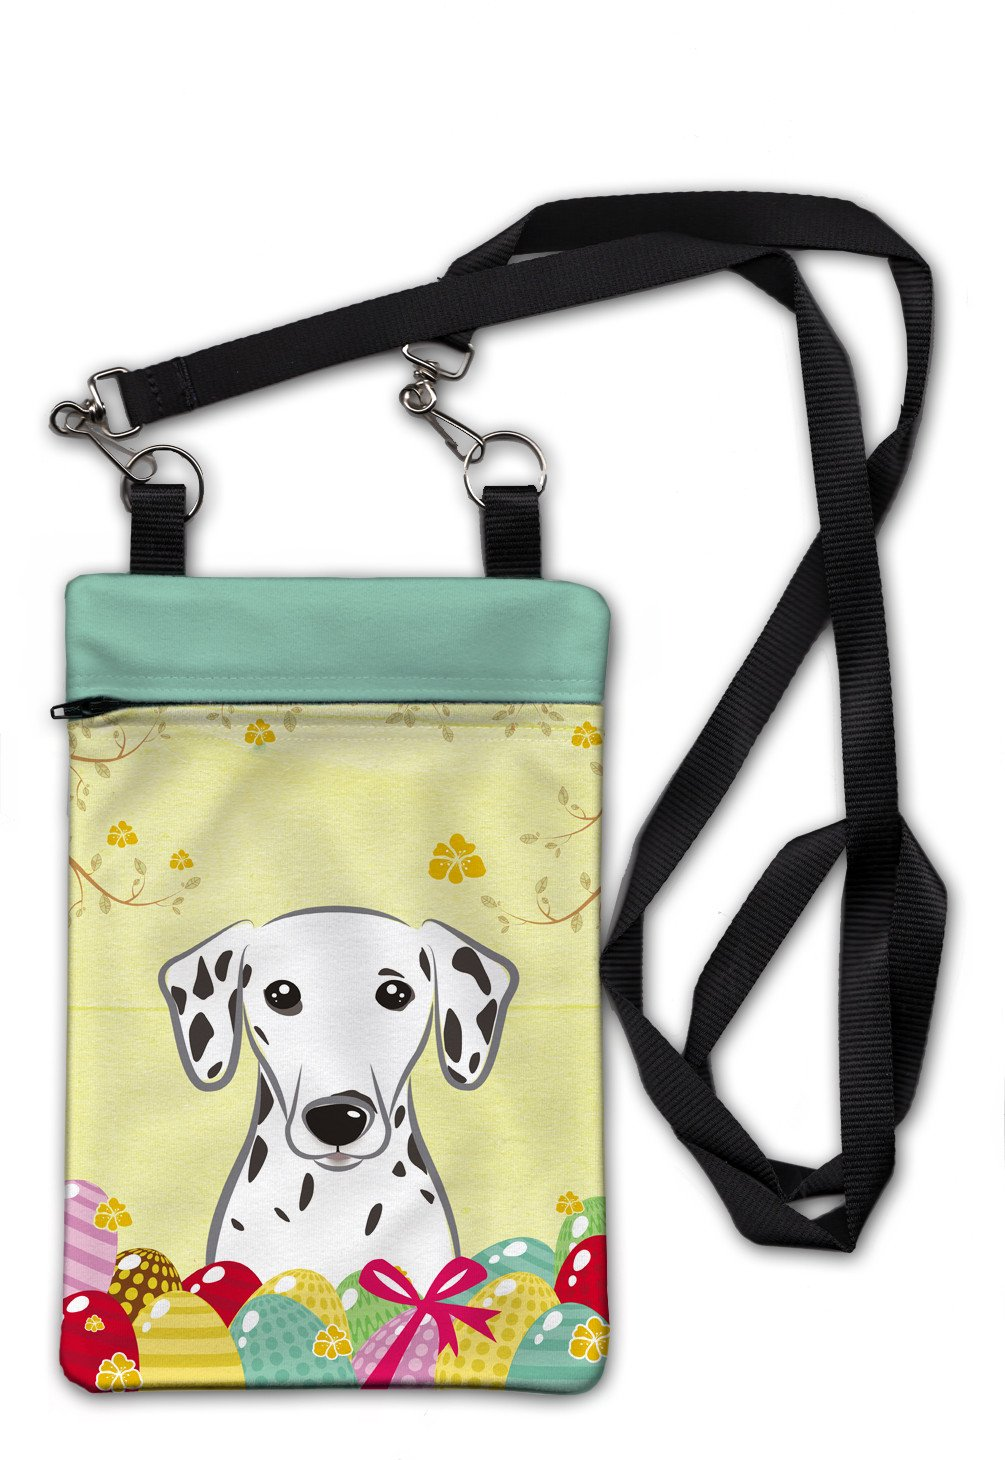 Dalmatian Easter Egg Hunt Crossbody Bag Purse BB1892OBDY by Caroline's Treasures